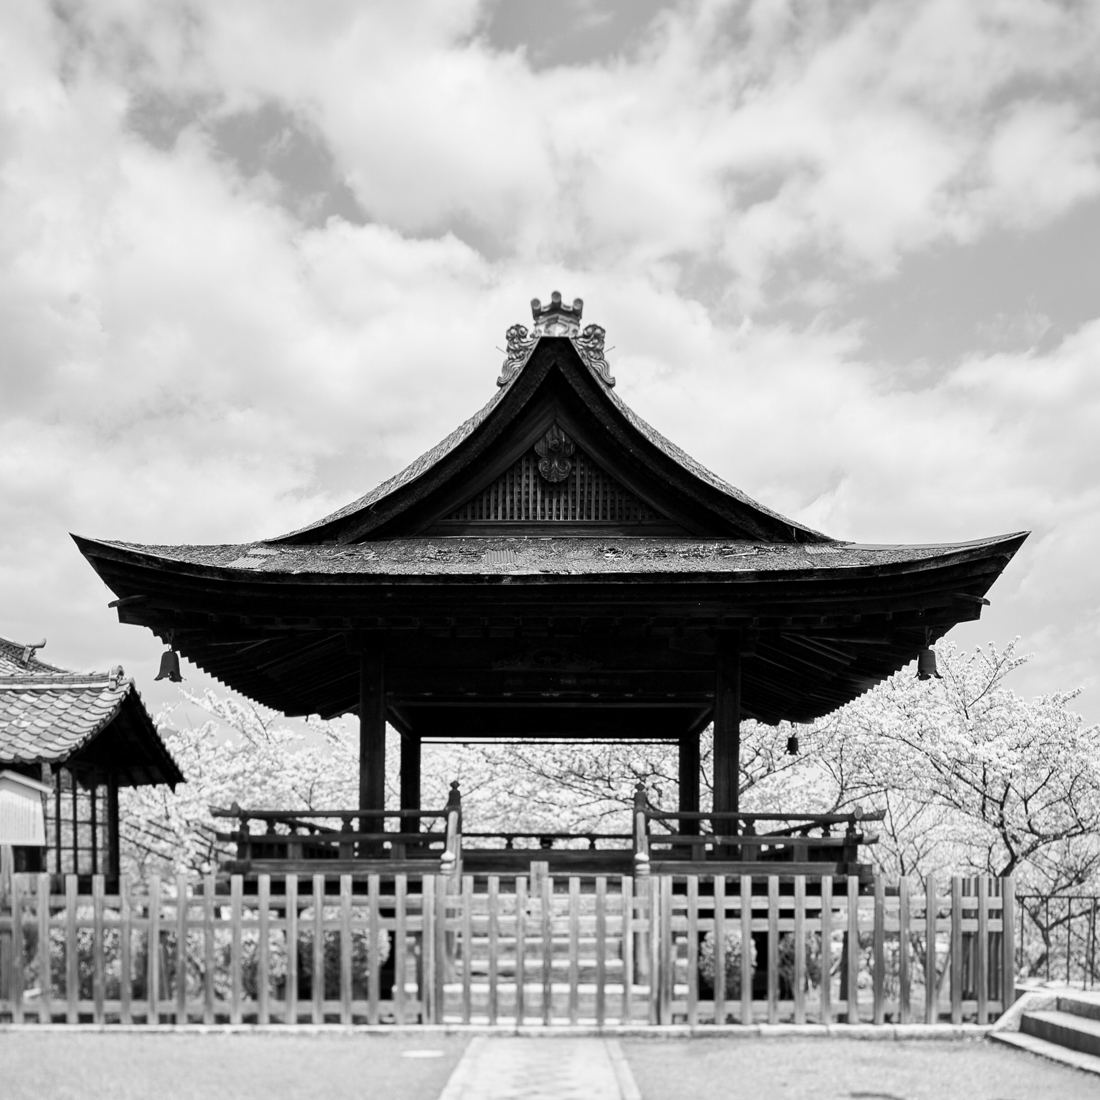 thumbnail The roof of Japanese architecture as a symbol